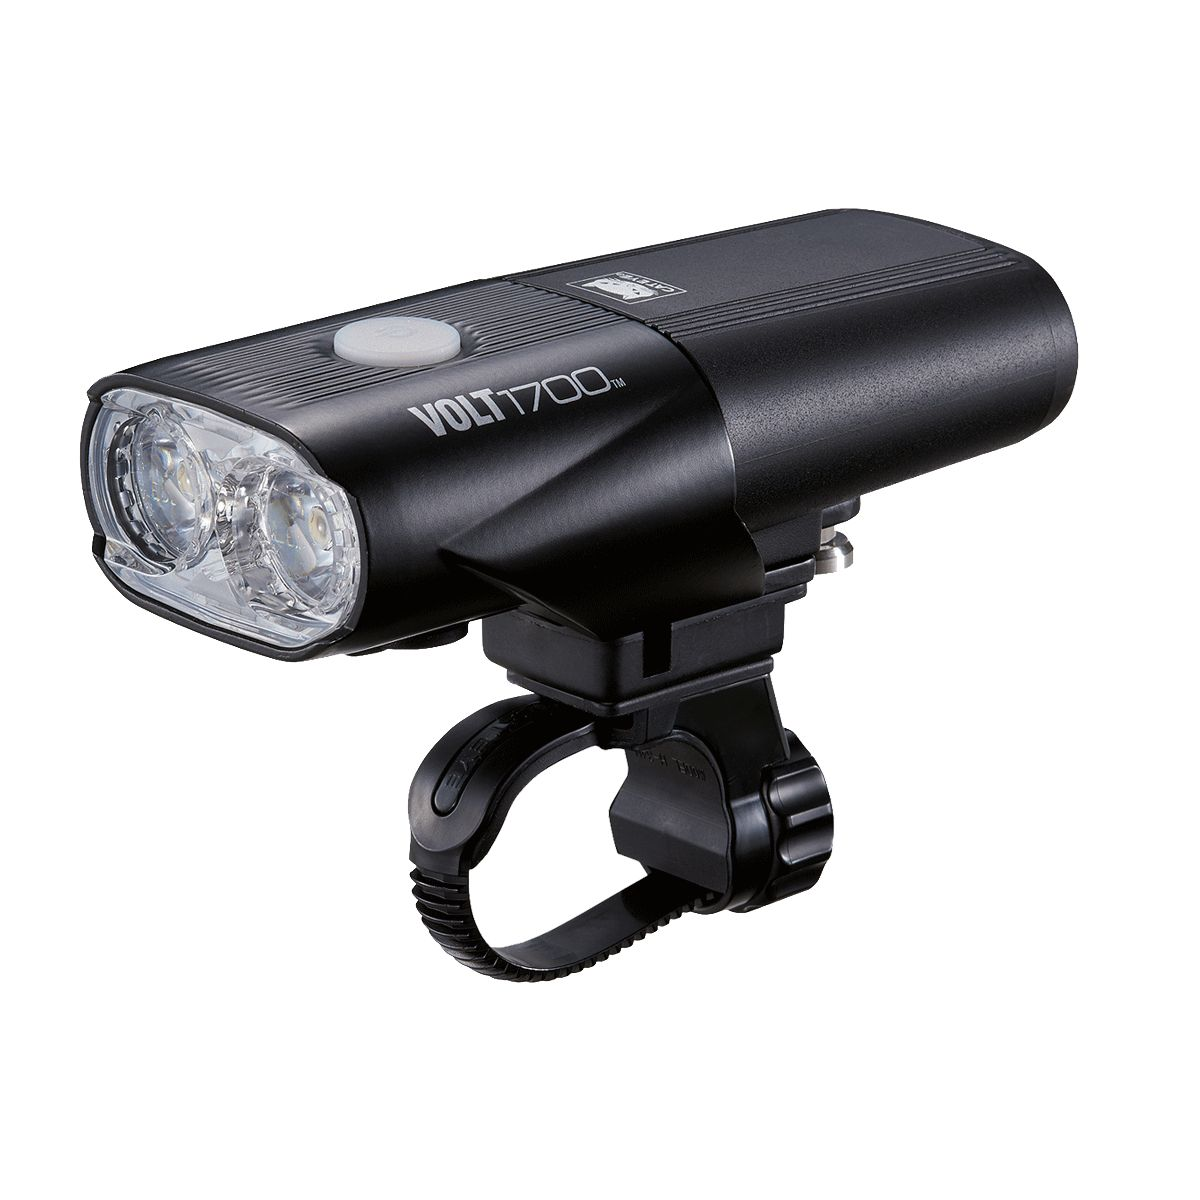 Cateye Volt 1700 Usb Rechargeable Front Light | Computer Battery and Charger